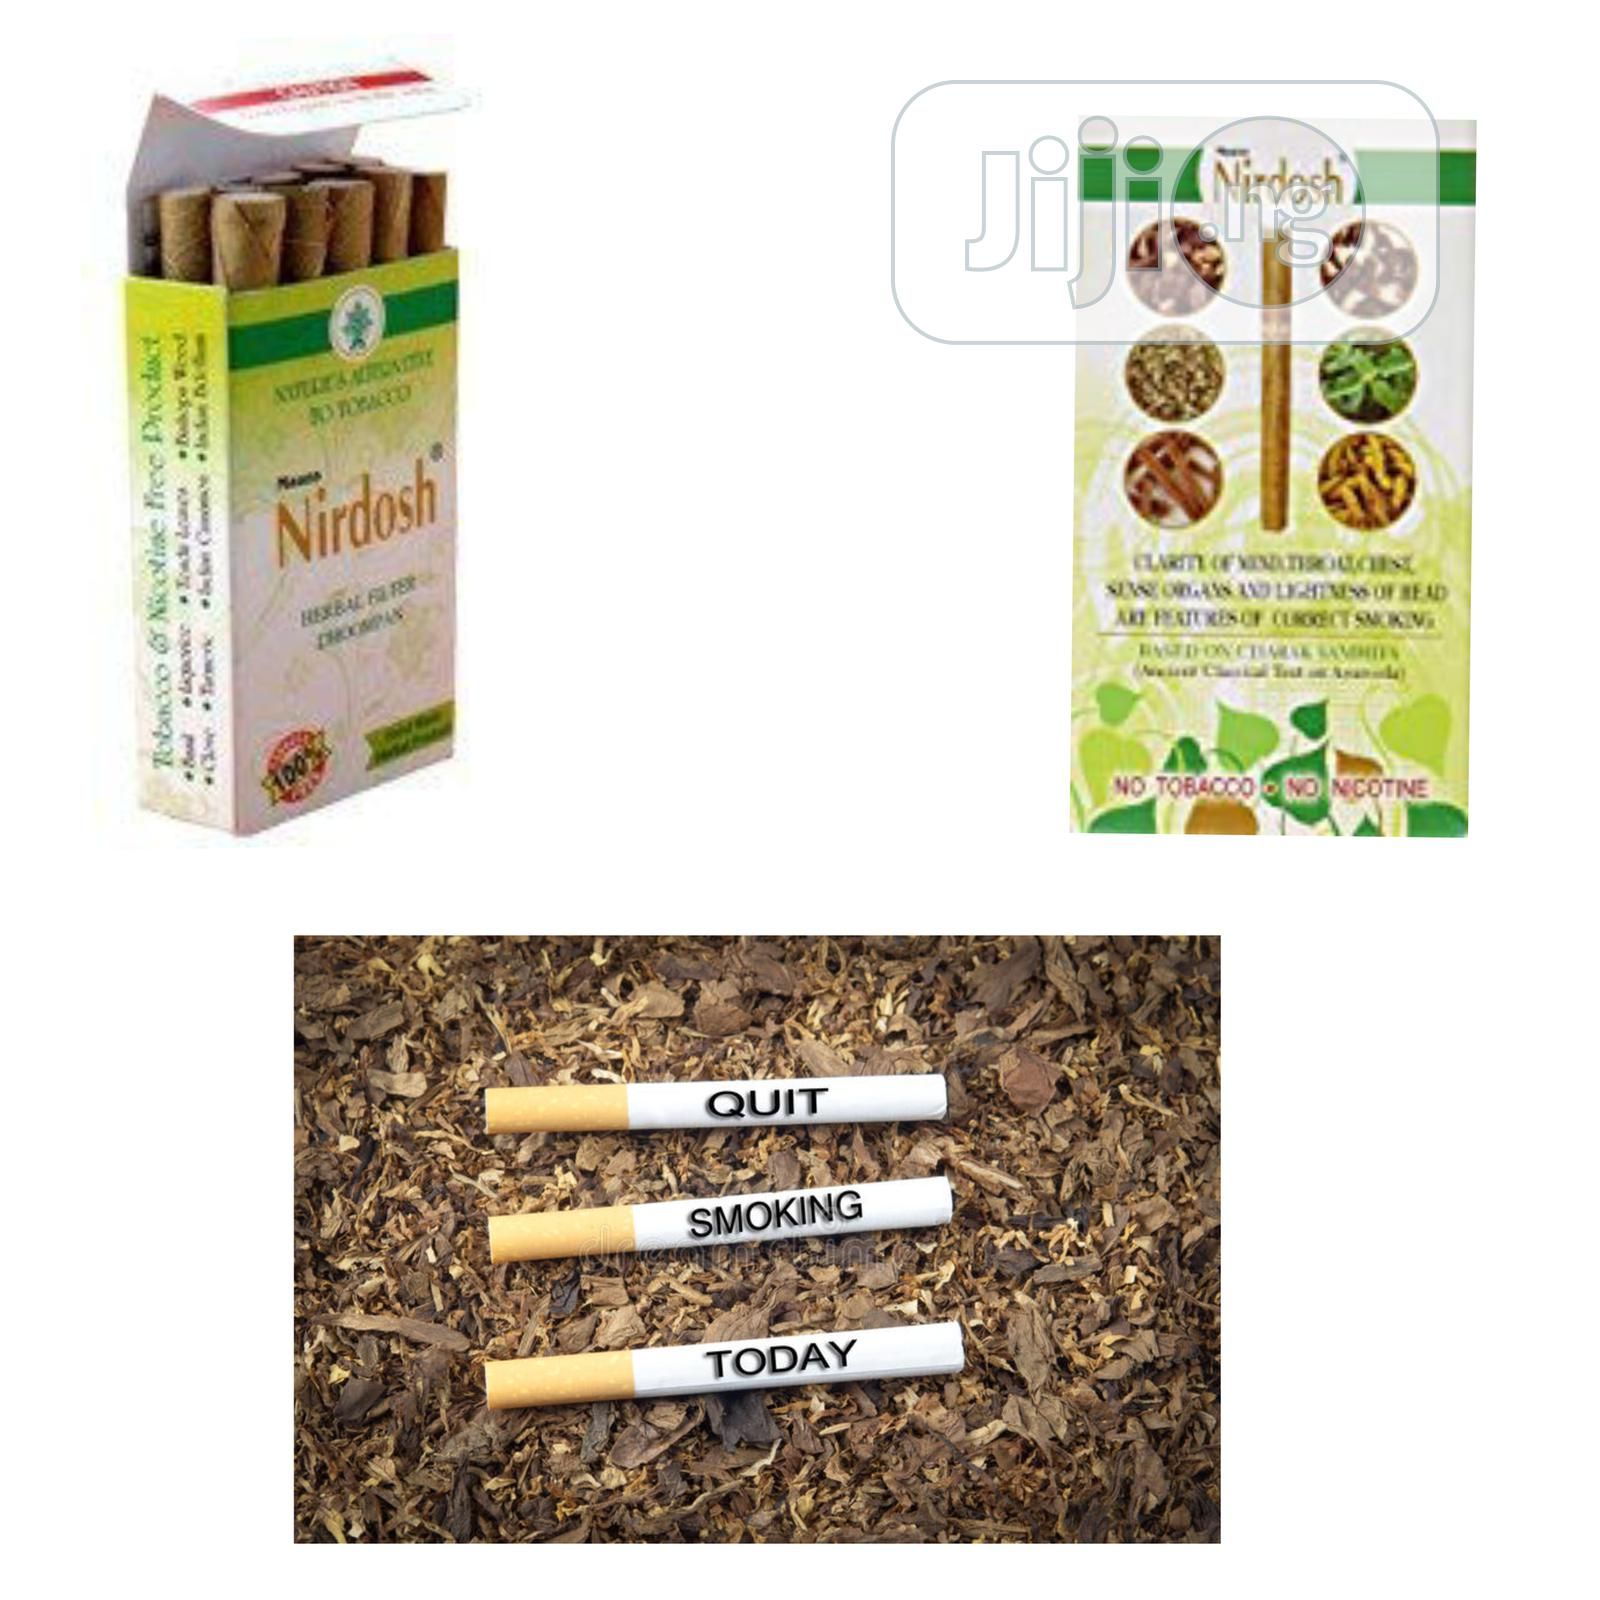 Is Time to Quit Smoking With Nirdosh Herbal Remedy